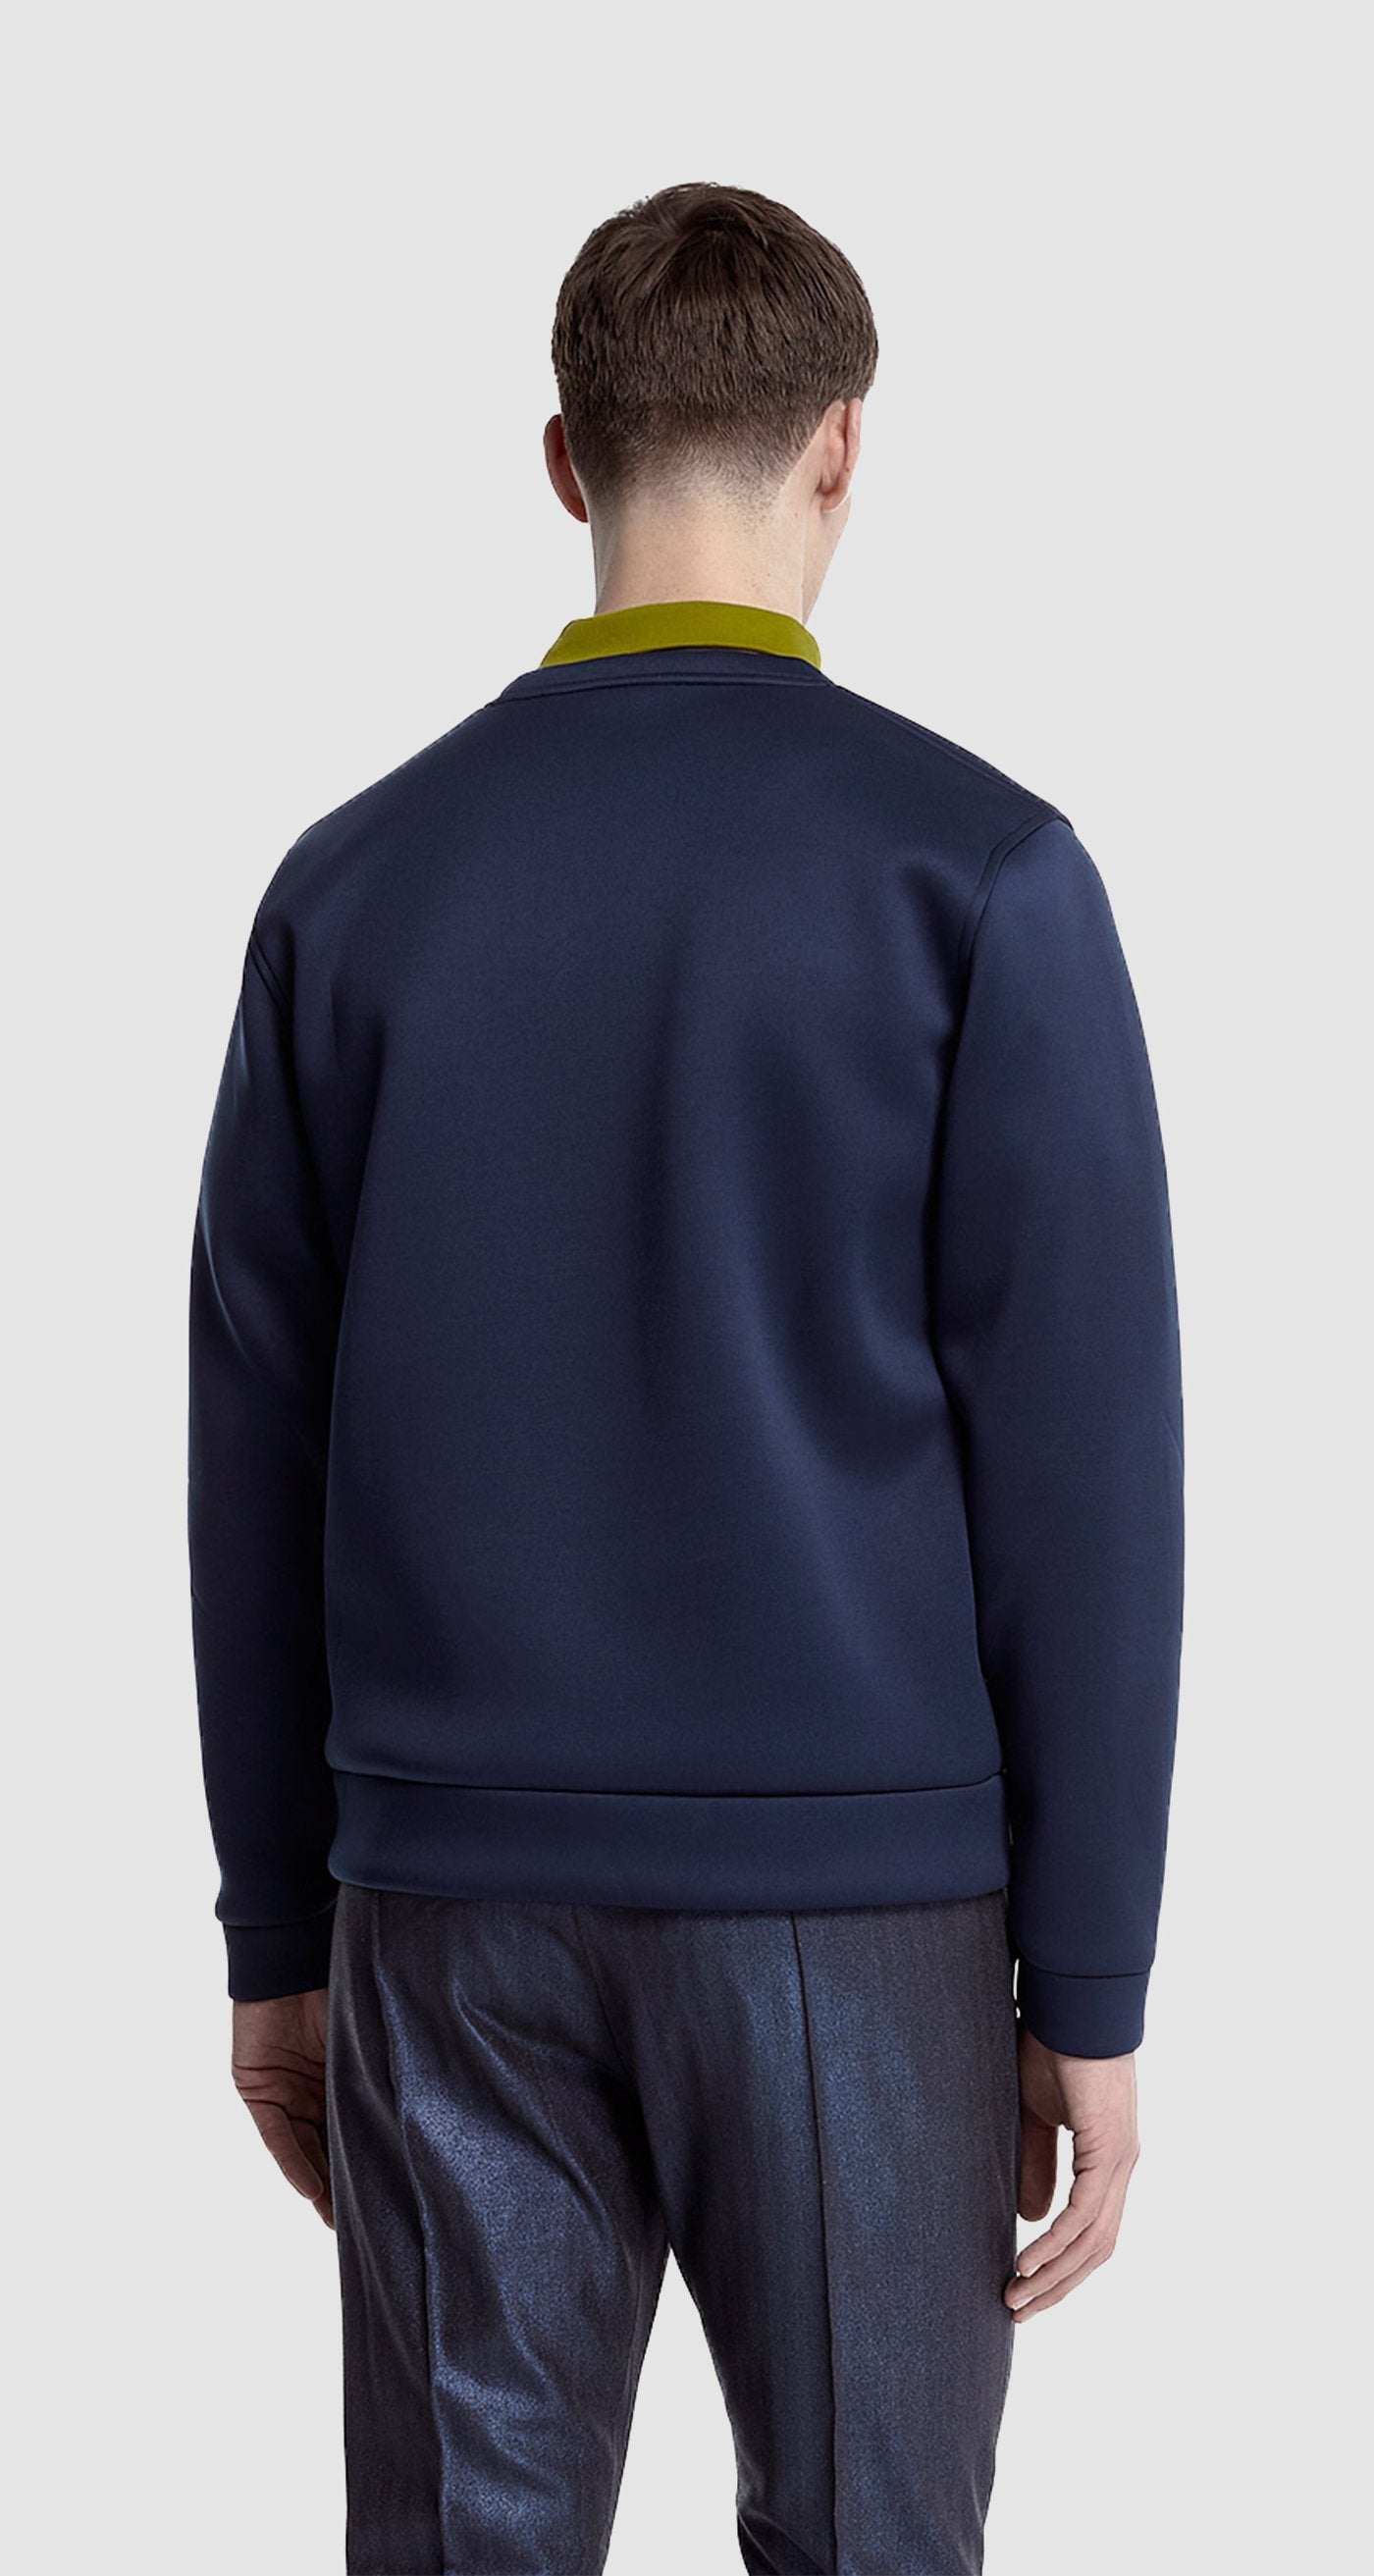 Navy Neo Prene Sweater